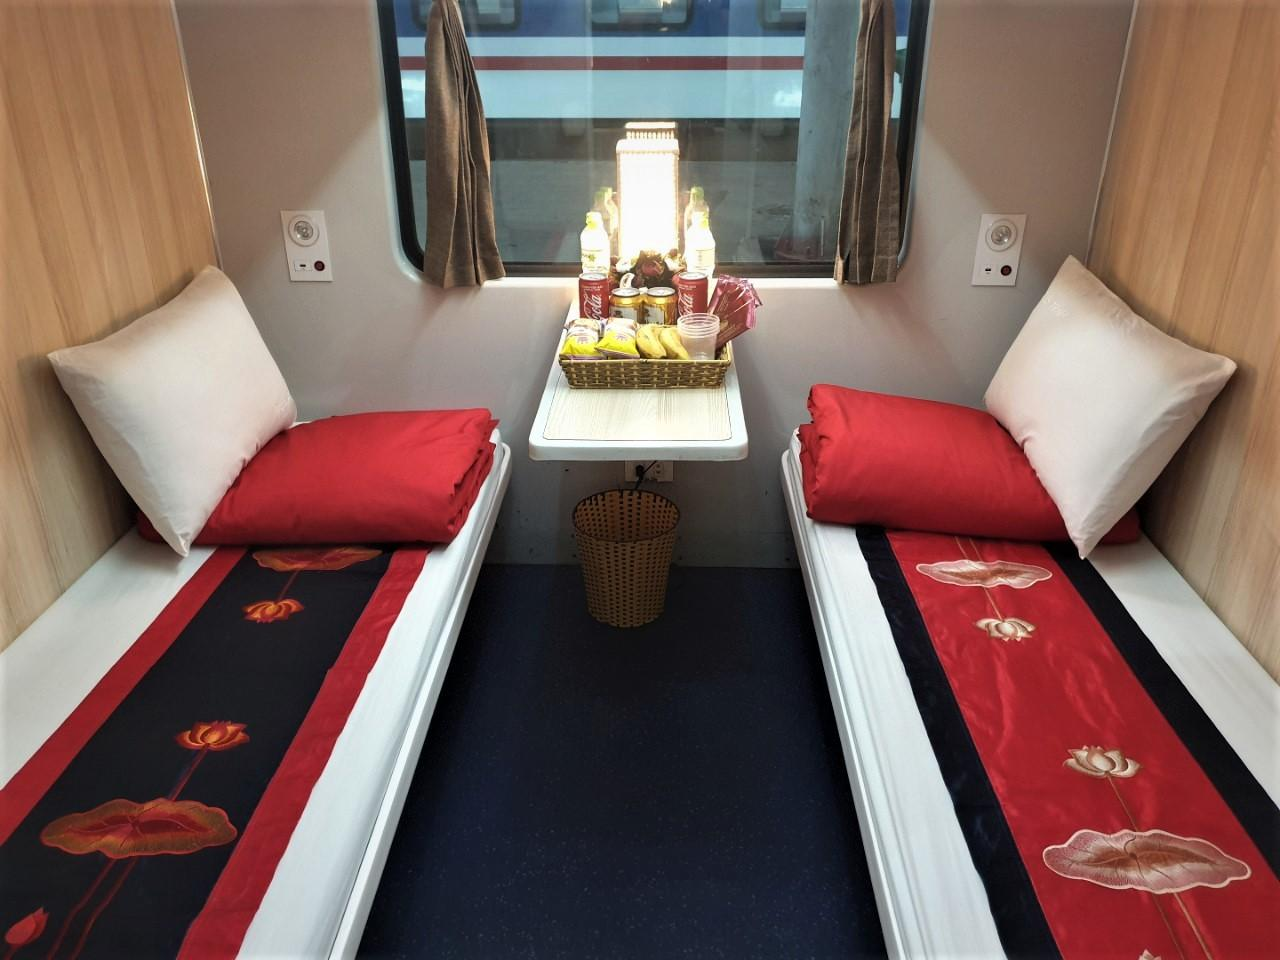 Hà Nội – Huế  (20h00 – 09h30) (Deluxe 4 Berths Cabin, One Way)